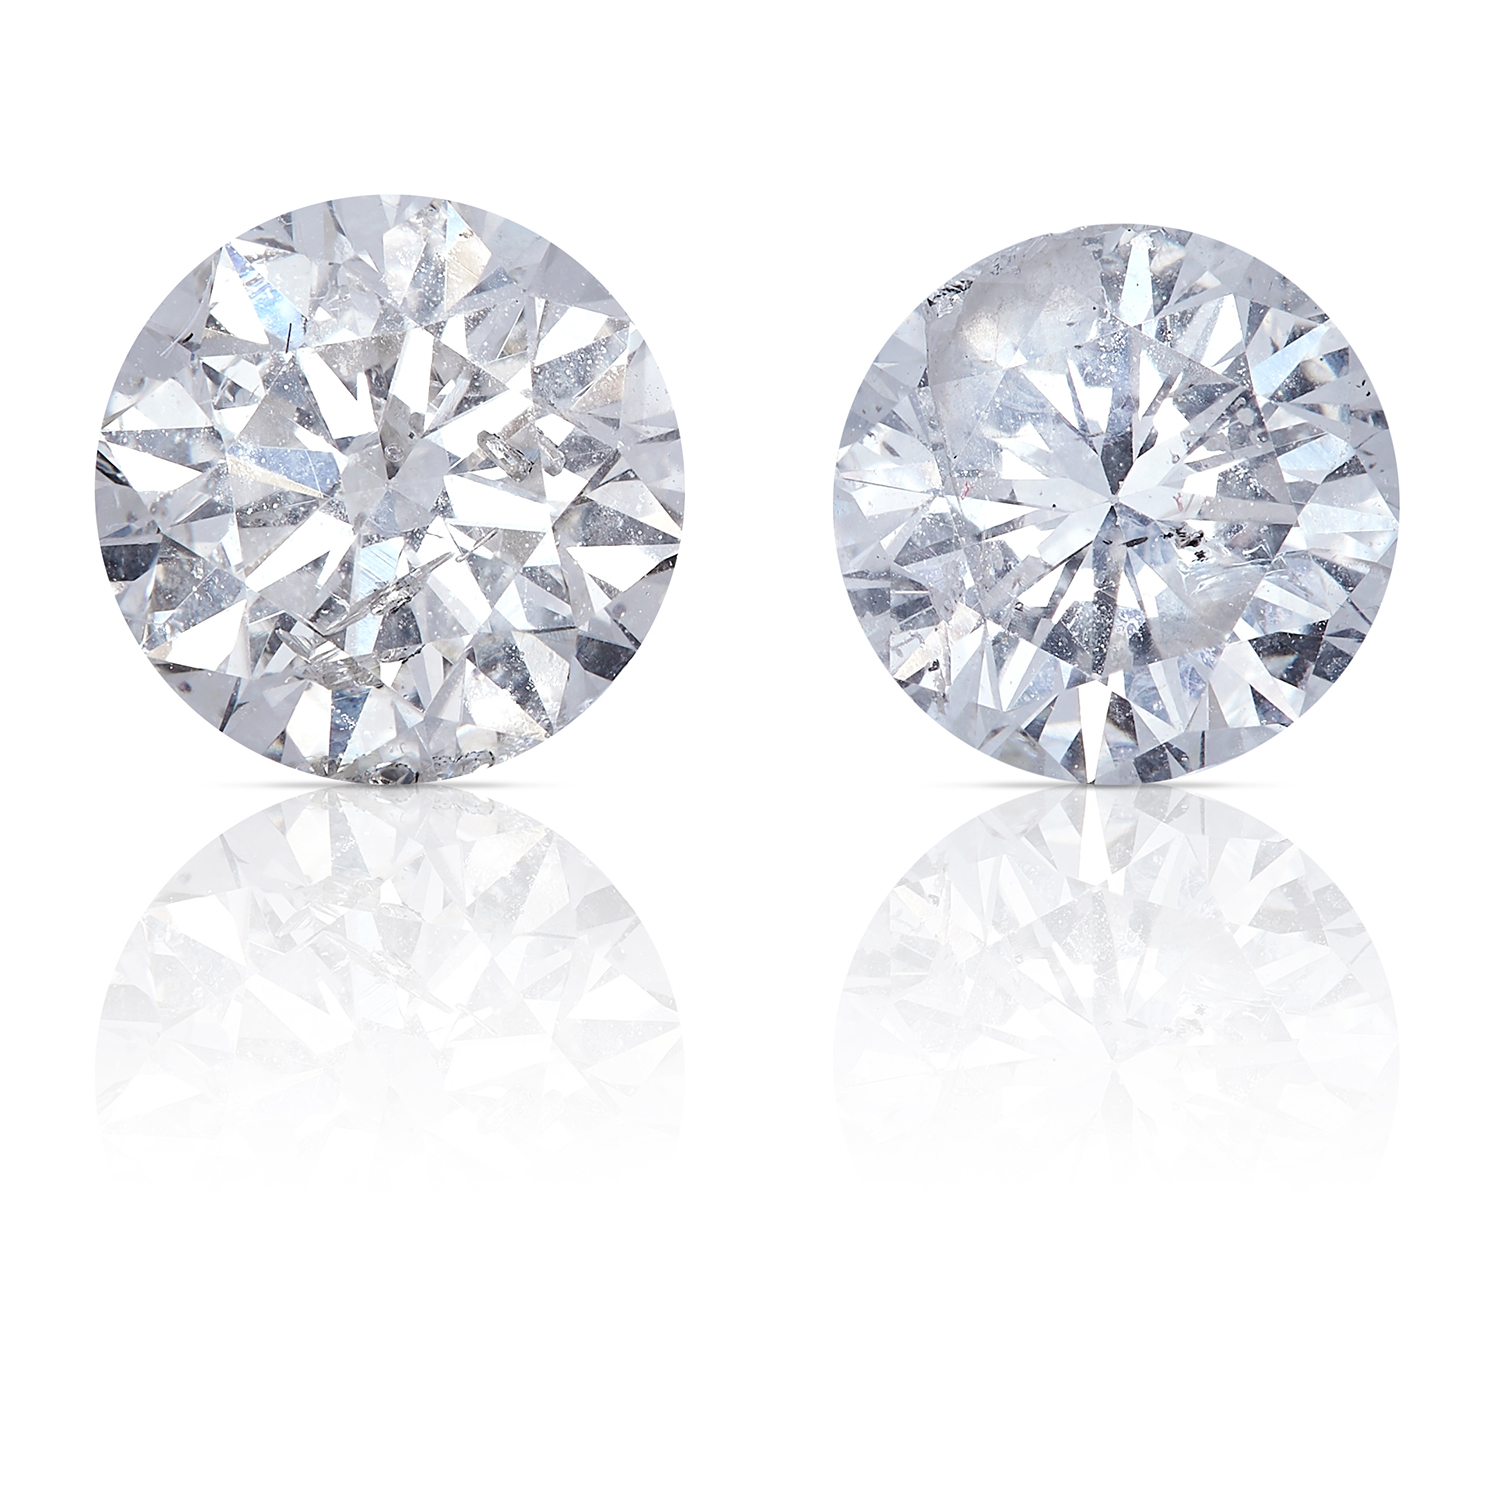 TWO ROUND CUT MODERN BRILLIANT DIAMONDS TOTALLING 1.56cts, UNMOUNTED.